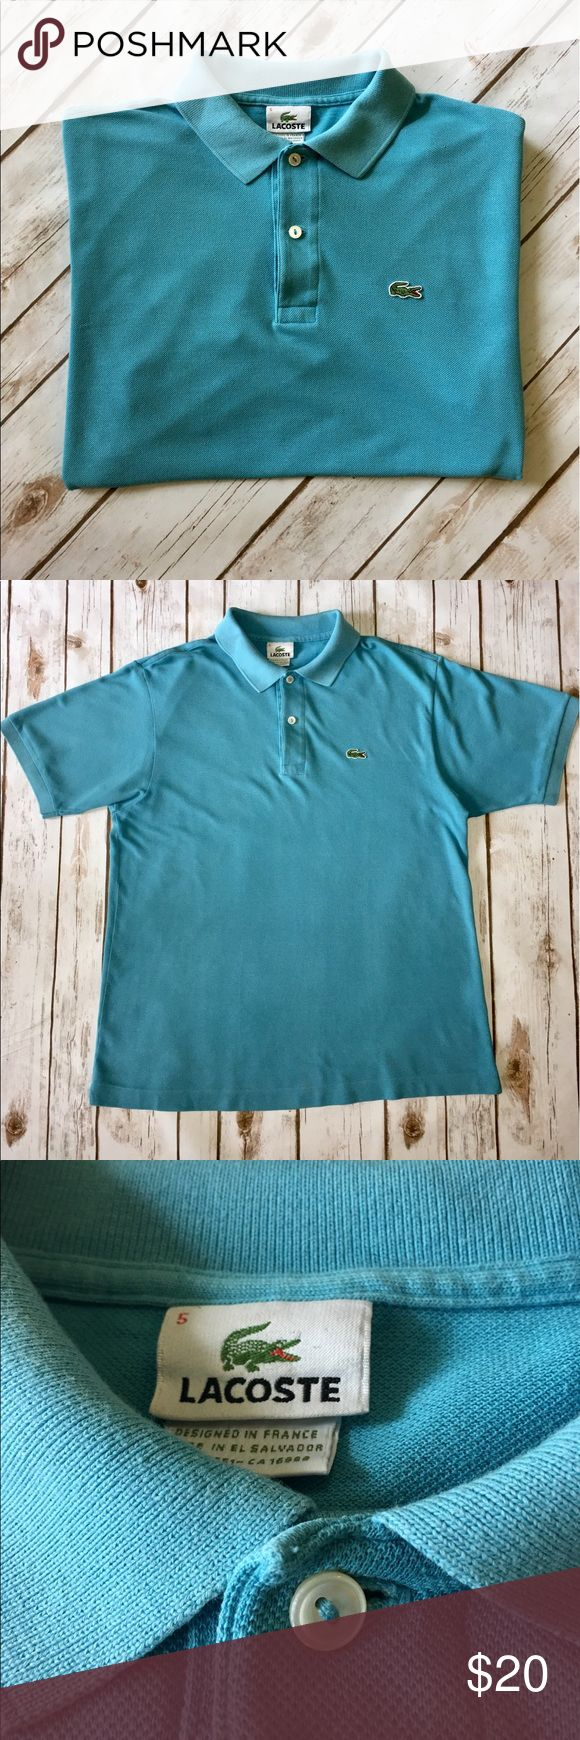 Lacoste - Men's Short Sleeved Polo - Medium Lacoste - Men's Short Sleeved, Aqua Colored Polo (5 = Medium U.S.) In exceptional preowned condition. Please be sure to check out all of my other men's items to bundle and save. Same day or next business day shipping is guaranteed. Reasonable offers will be considered. Lacoste Shirts Polos